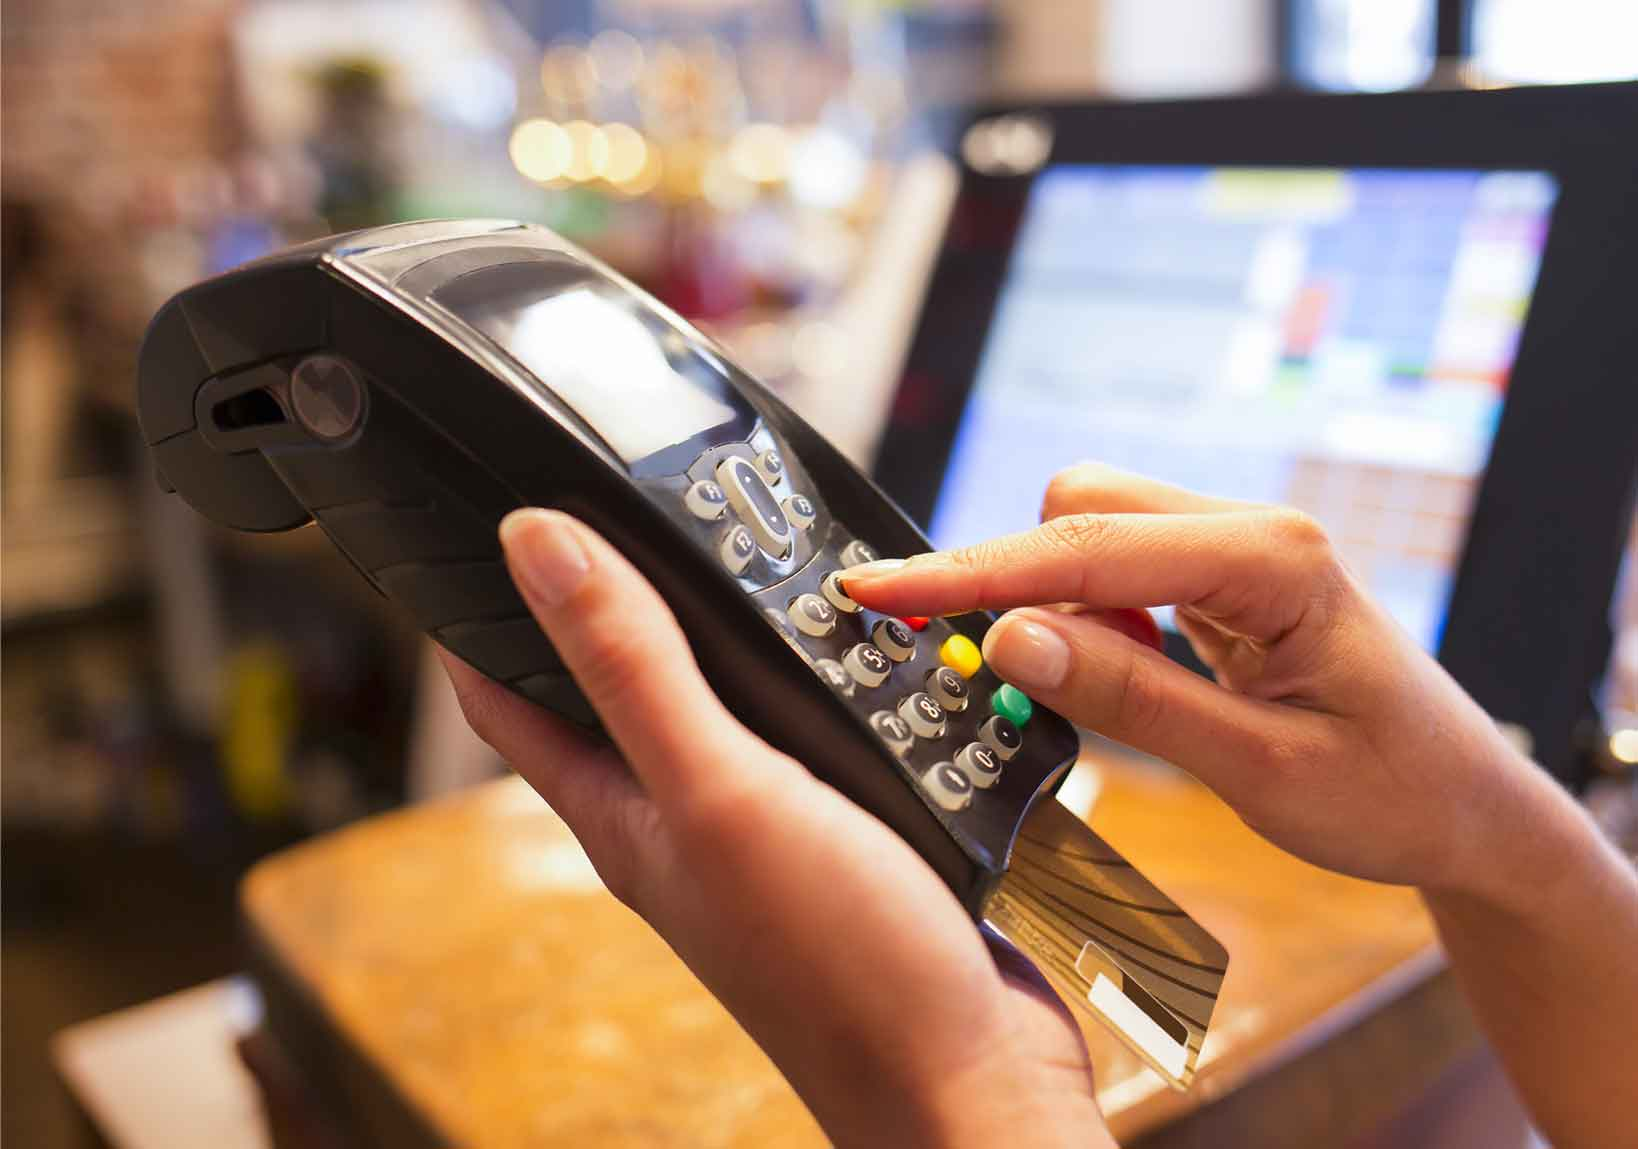 Retailers ask for action on card fraud